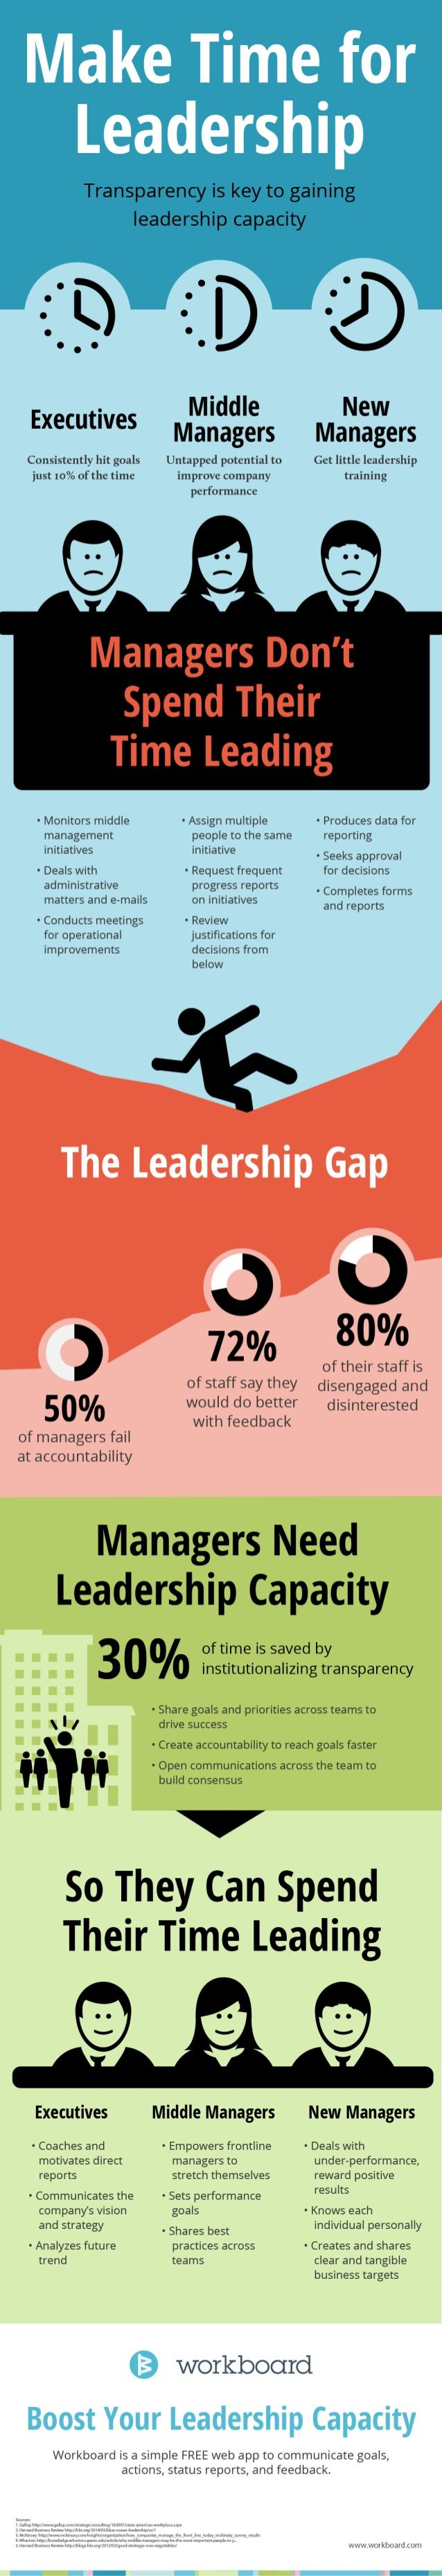 Make Time for Leadership: How and why should you make time for leadership? This is a useful infographic for any marketing leader. #TheMarketingManager #OliveNecessities